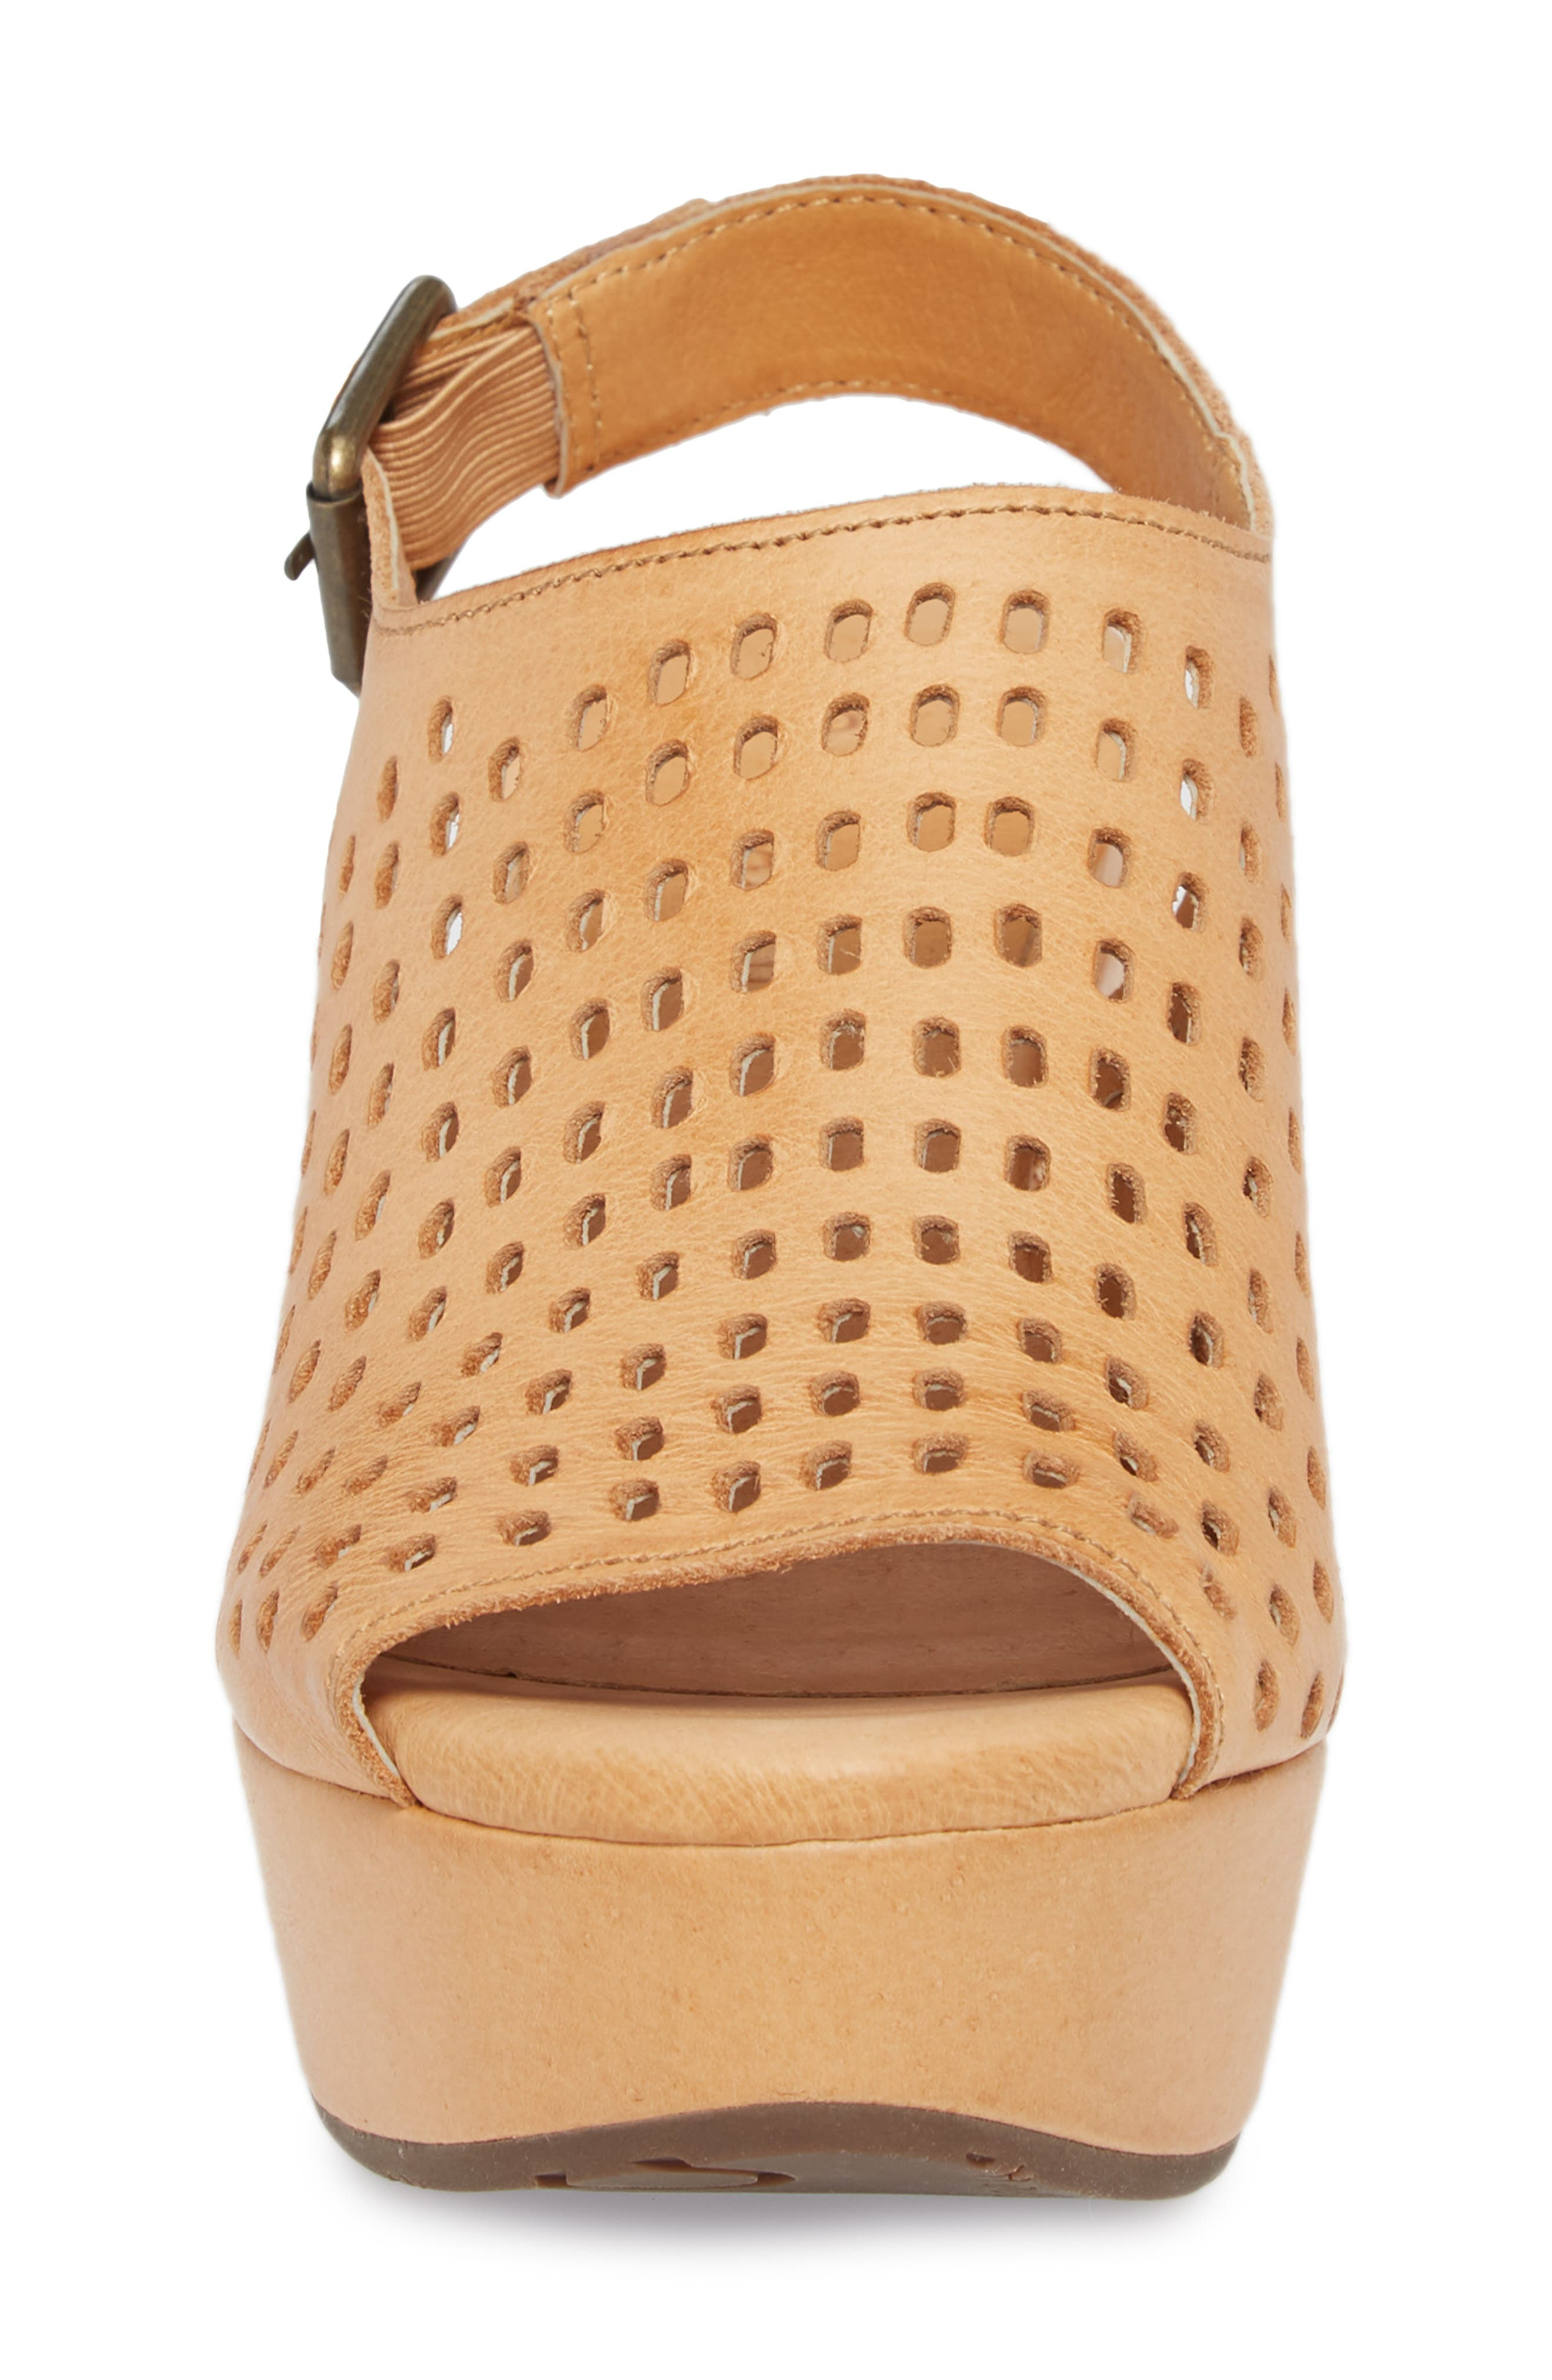 Wally Platform Wedge Sandal,                             Alternate thumbnail 4, color,                             Tan Leather